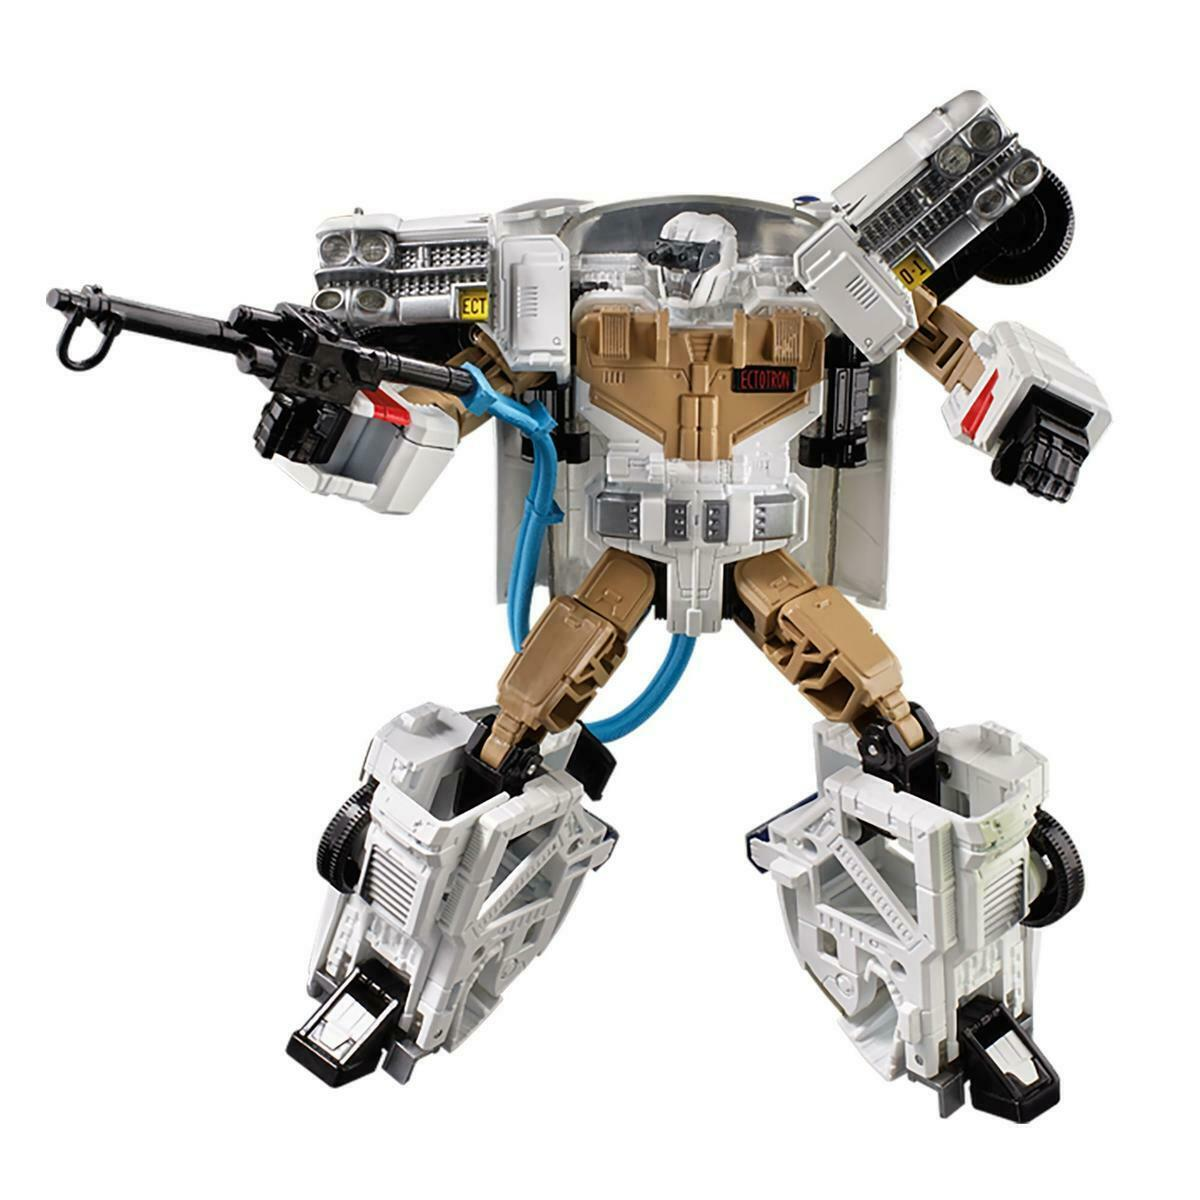 Transformers Ghost autobusTERS RBOT ECTO  1 ectotron DEFORMATA AUTO azione cifra